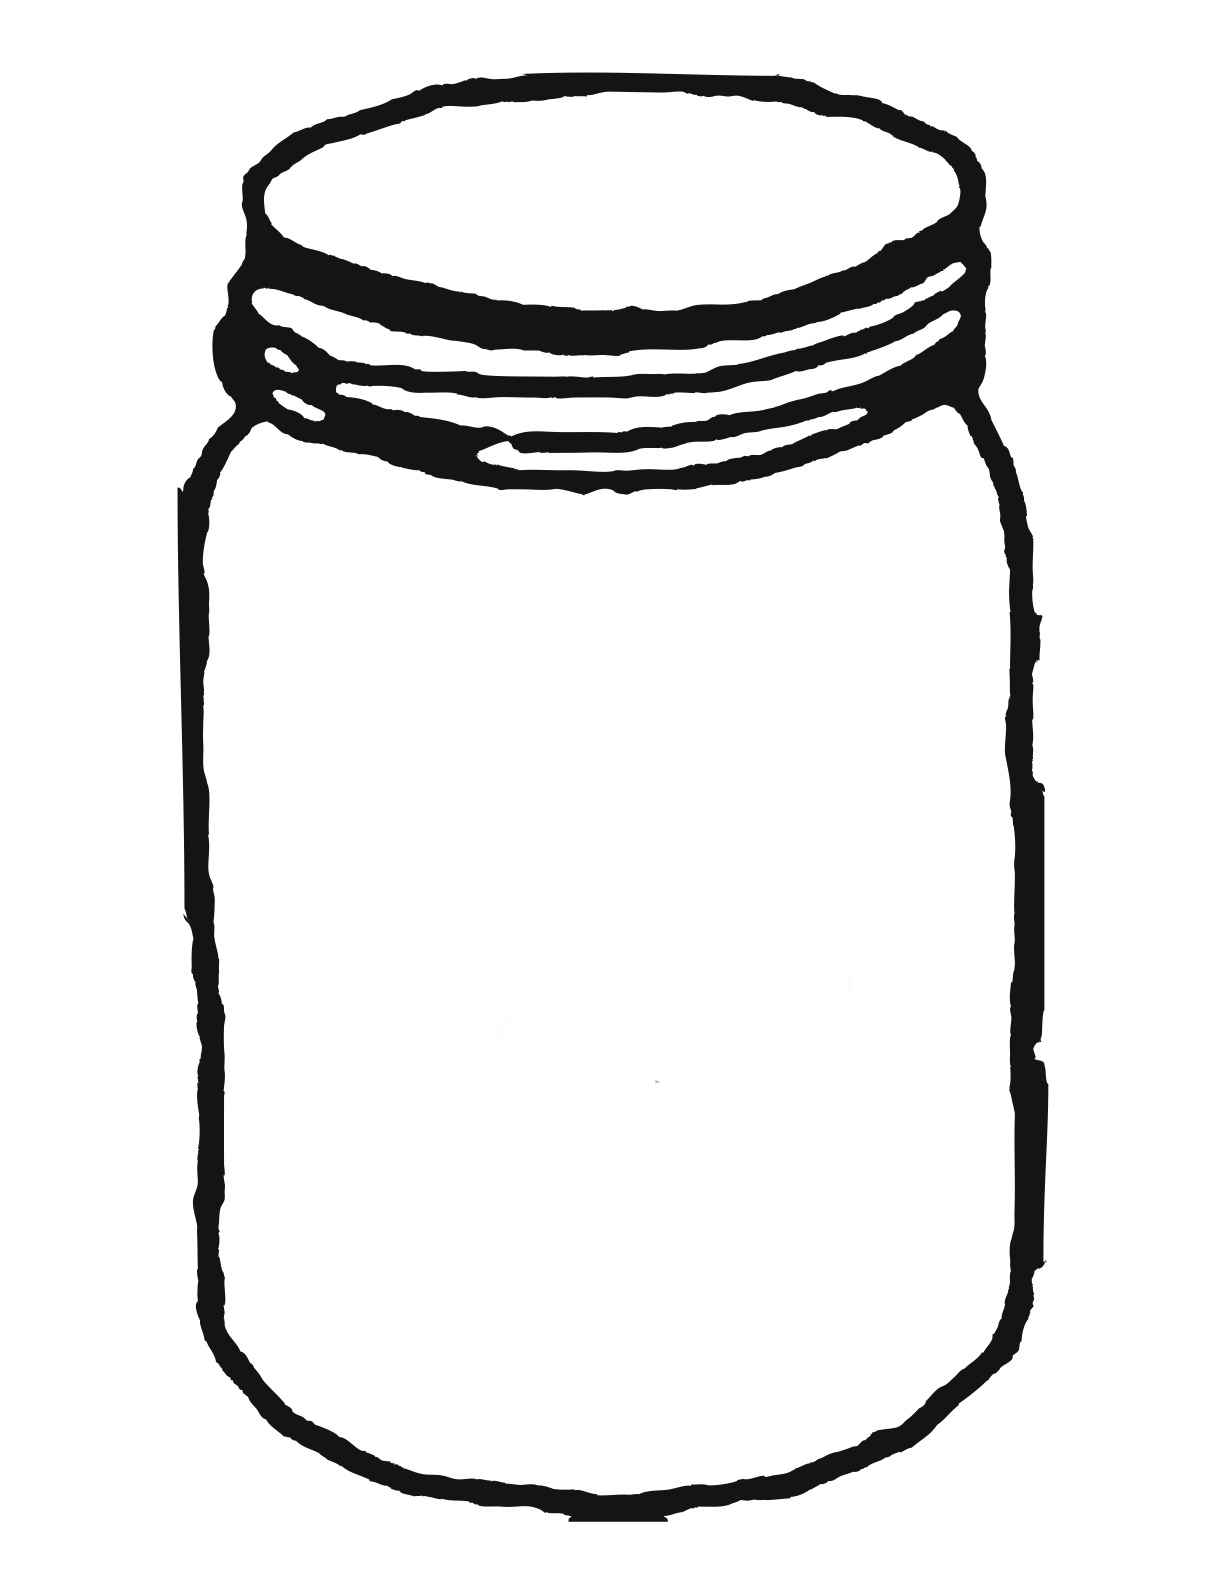 Baby food jar free clipart clip black and white download Baby Food Jar Clip Art | Free download best Baby Food Jar Clip Art ... clip black and white download